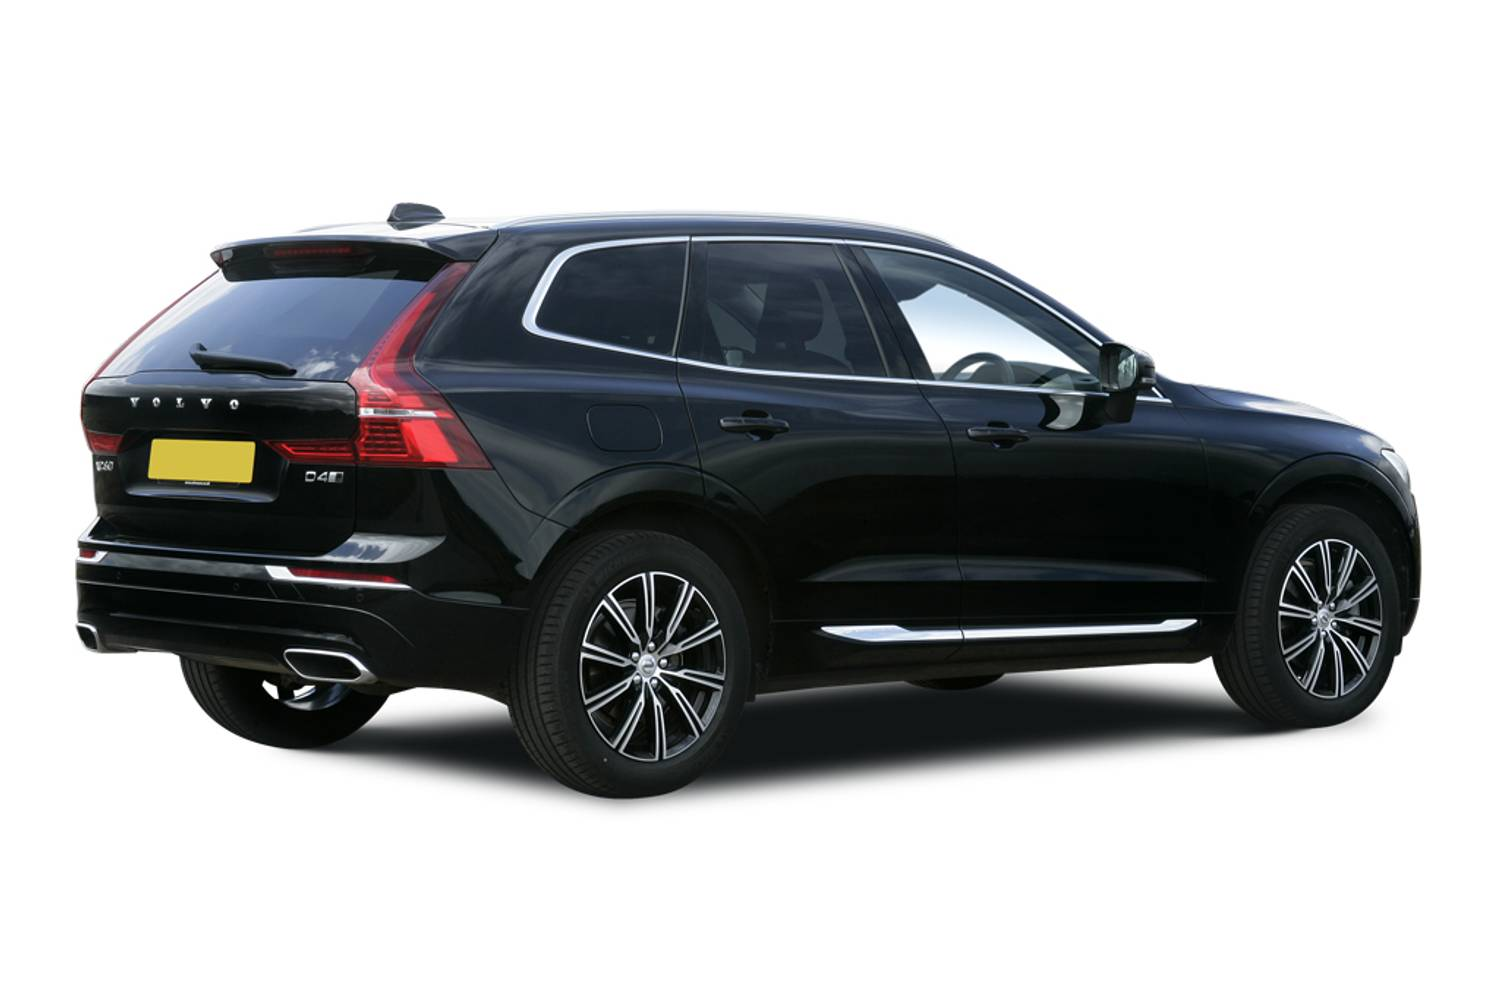 Volvo XC60 Estate 2.0 5dr Rear Three Quarter